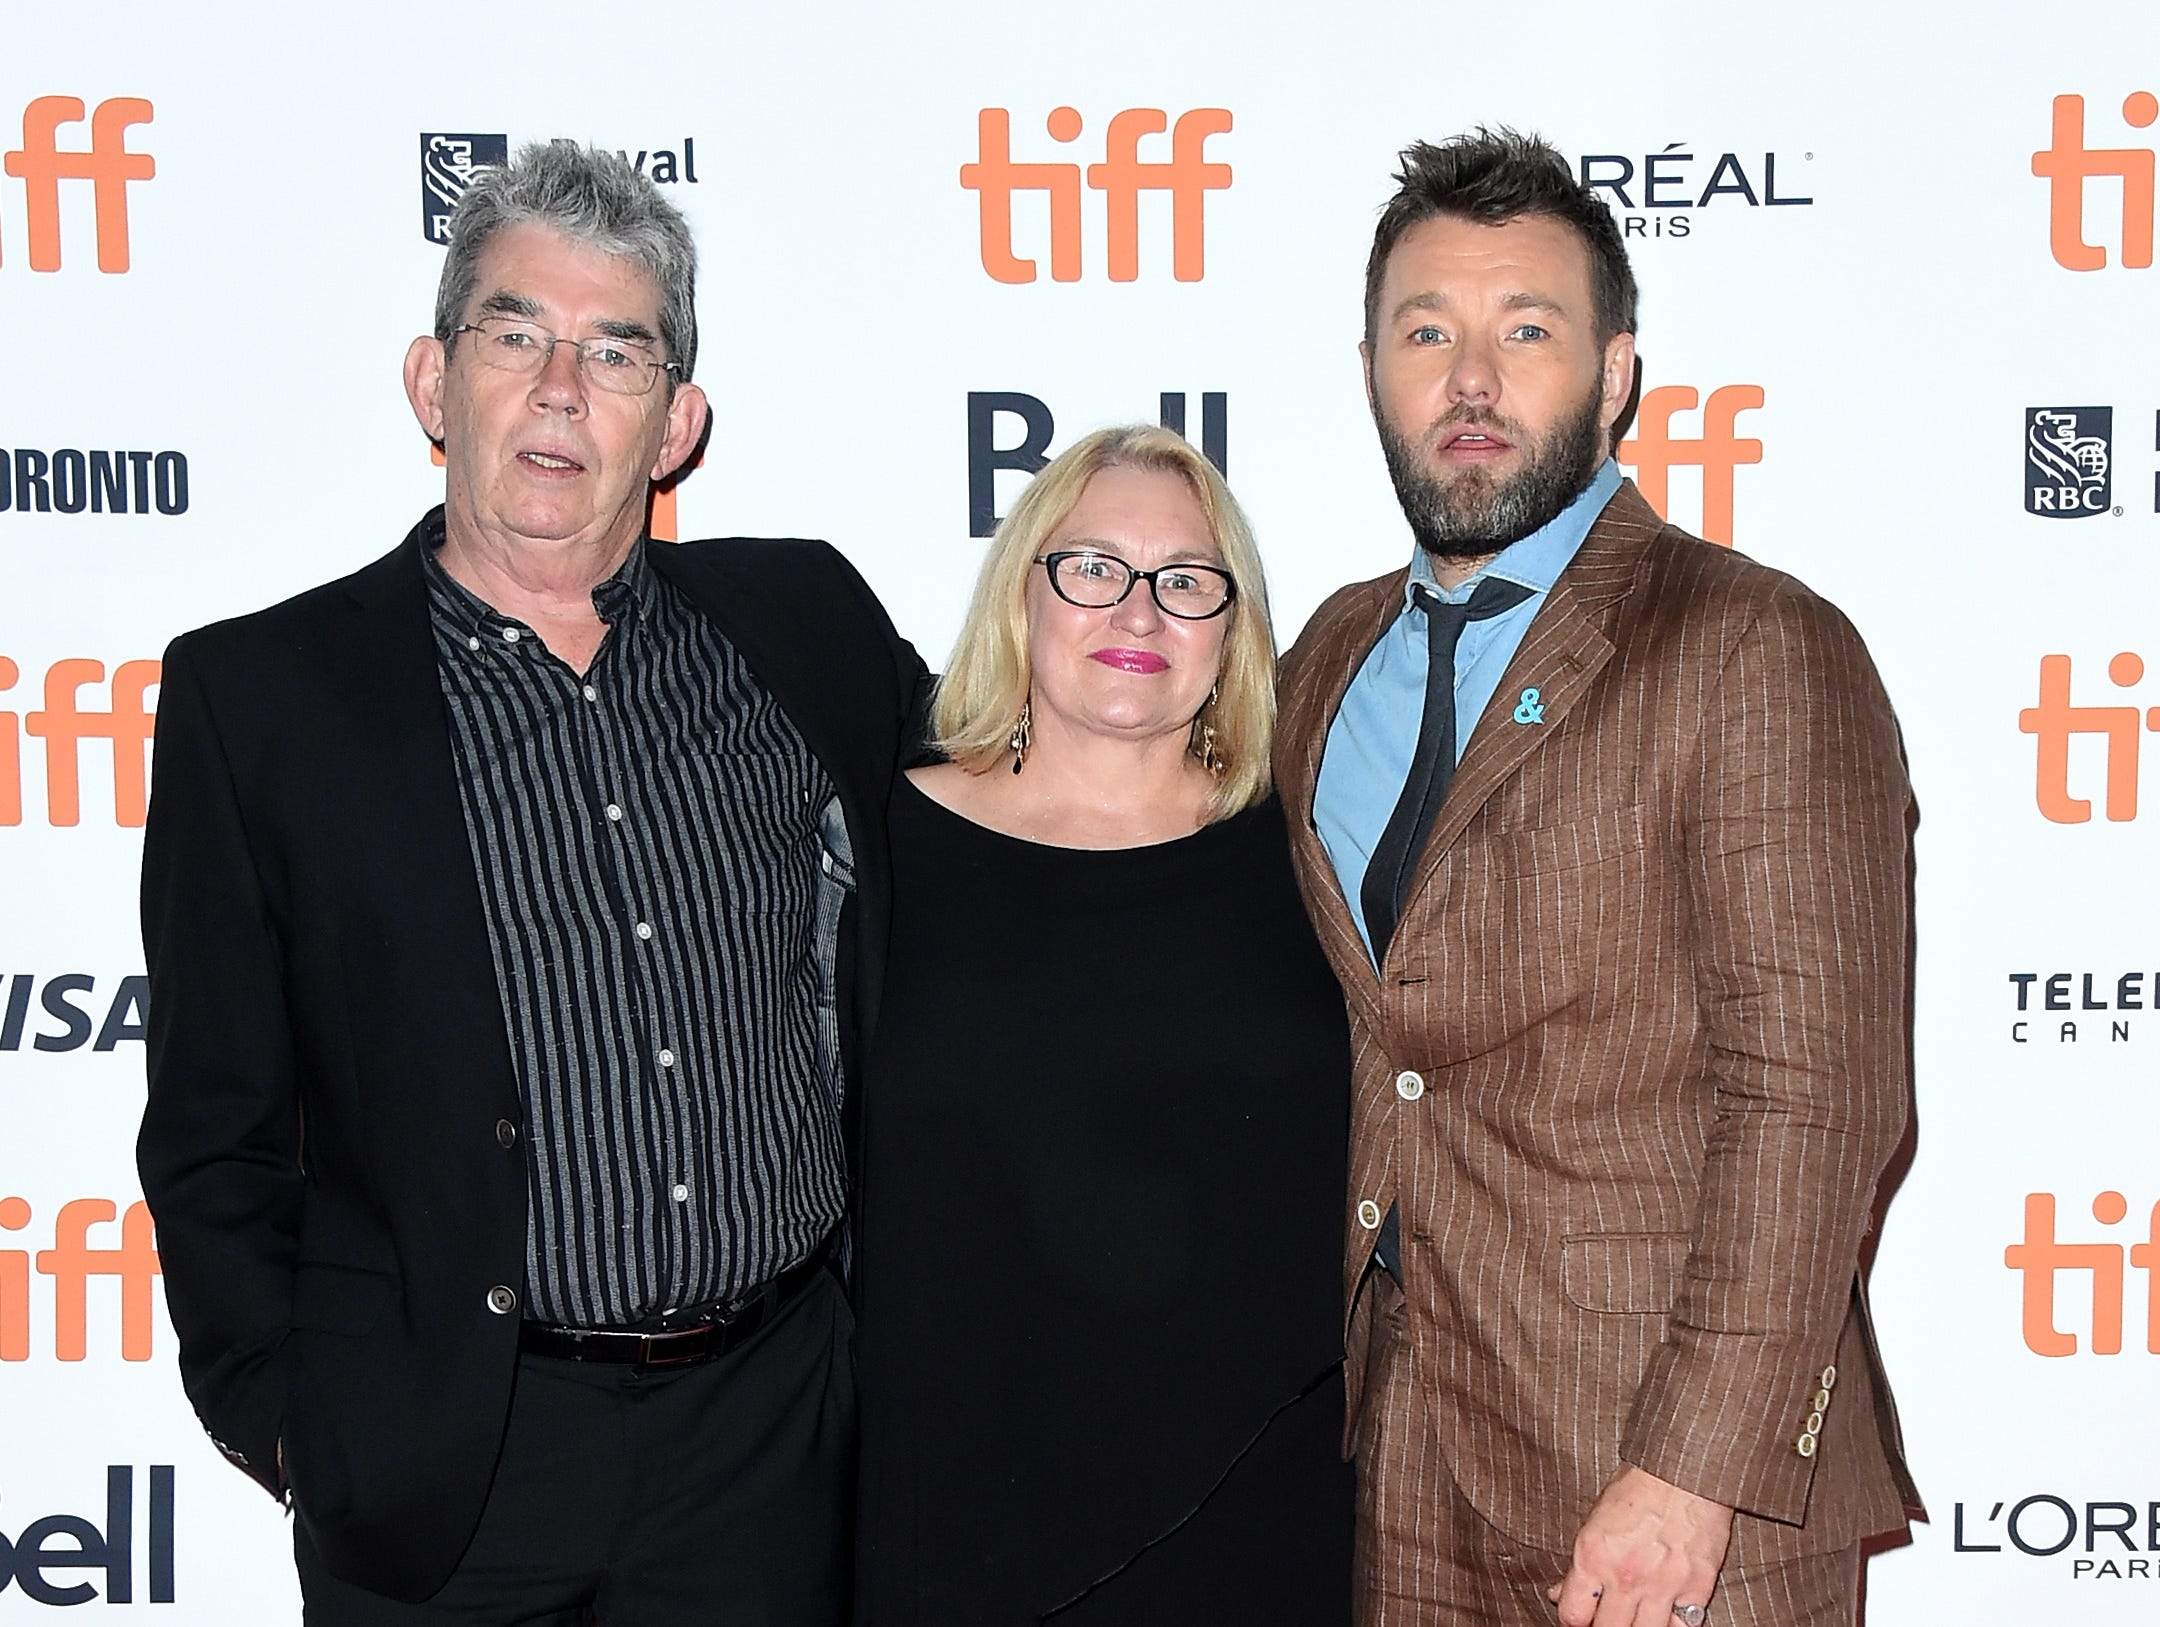 "TORONTO, ON - SEPTEMBER 11: (L-R) Michael Edgerton, Marianne Edgerton and Joel Edgerton attend the ""Boy Erased"" premiere during 2018 Toronto International Film Festival at Princess of Wales Theatre on September 11, 2018 in Toronto, Canada.  (Photo by Michael Loccisano/Getty Images) ORG XMIT: 775218802 ORIG FILE ID: 1031720148"